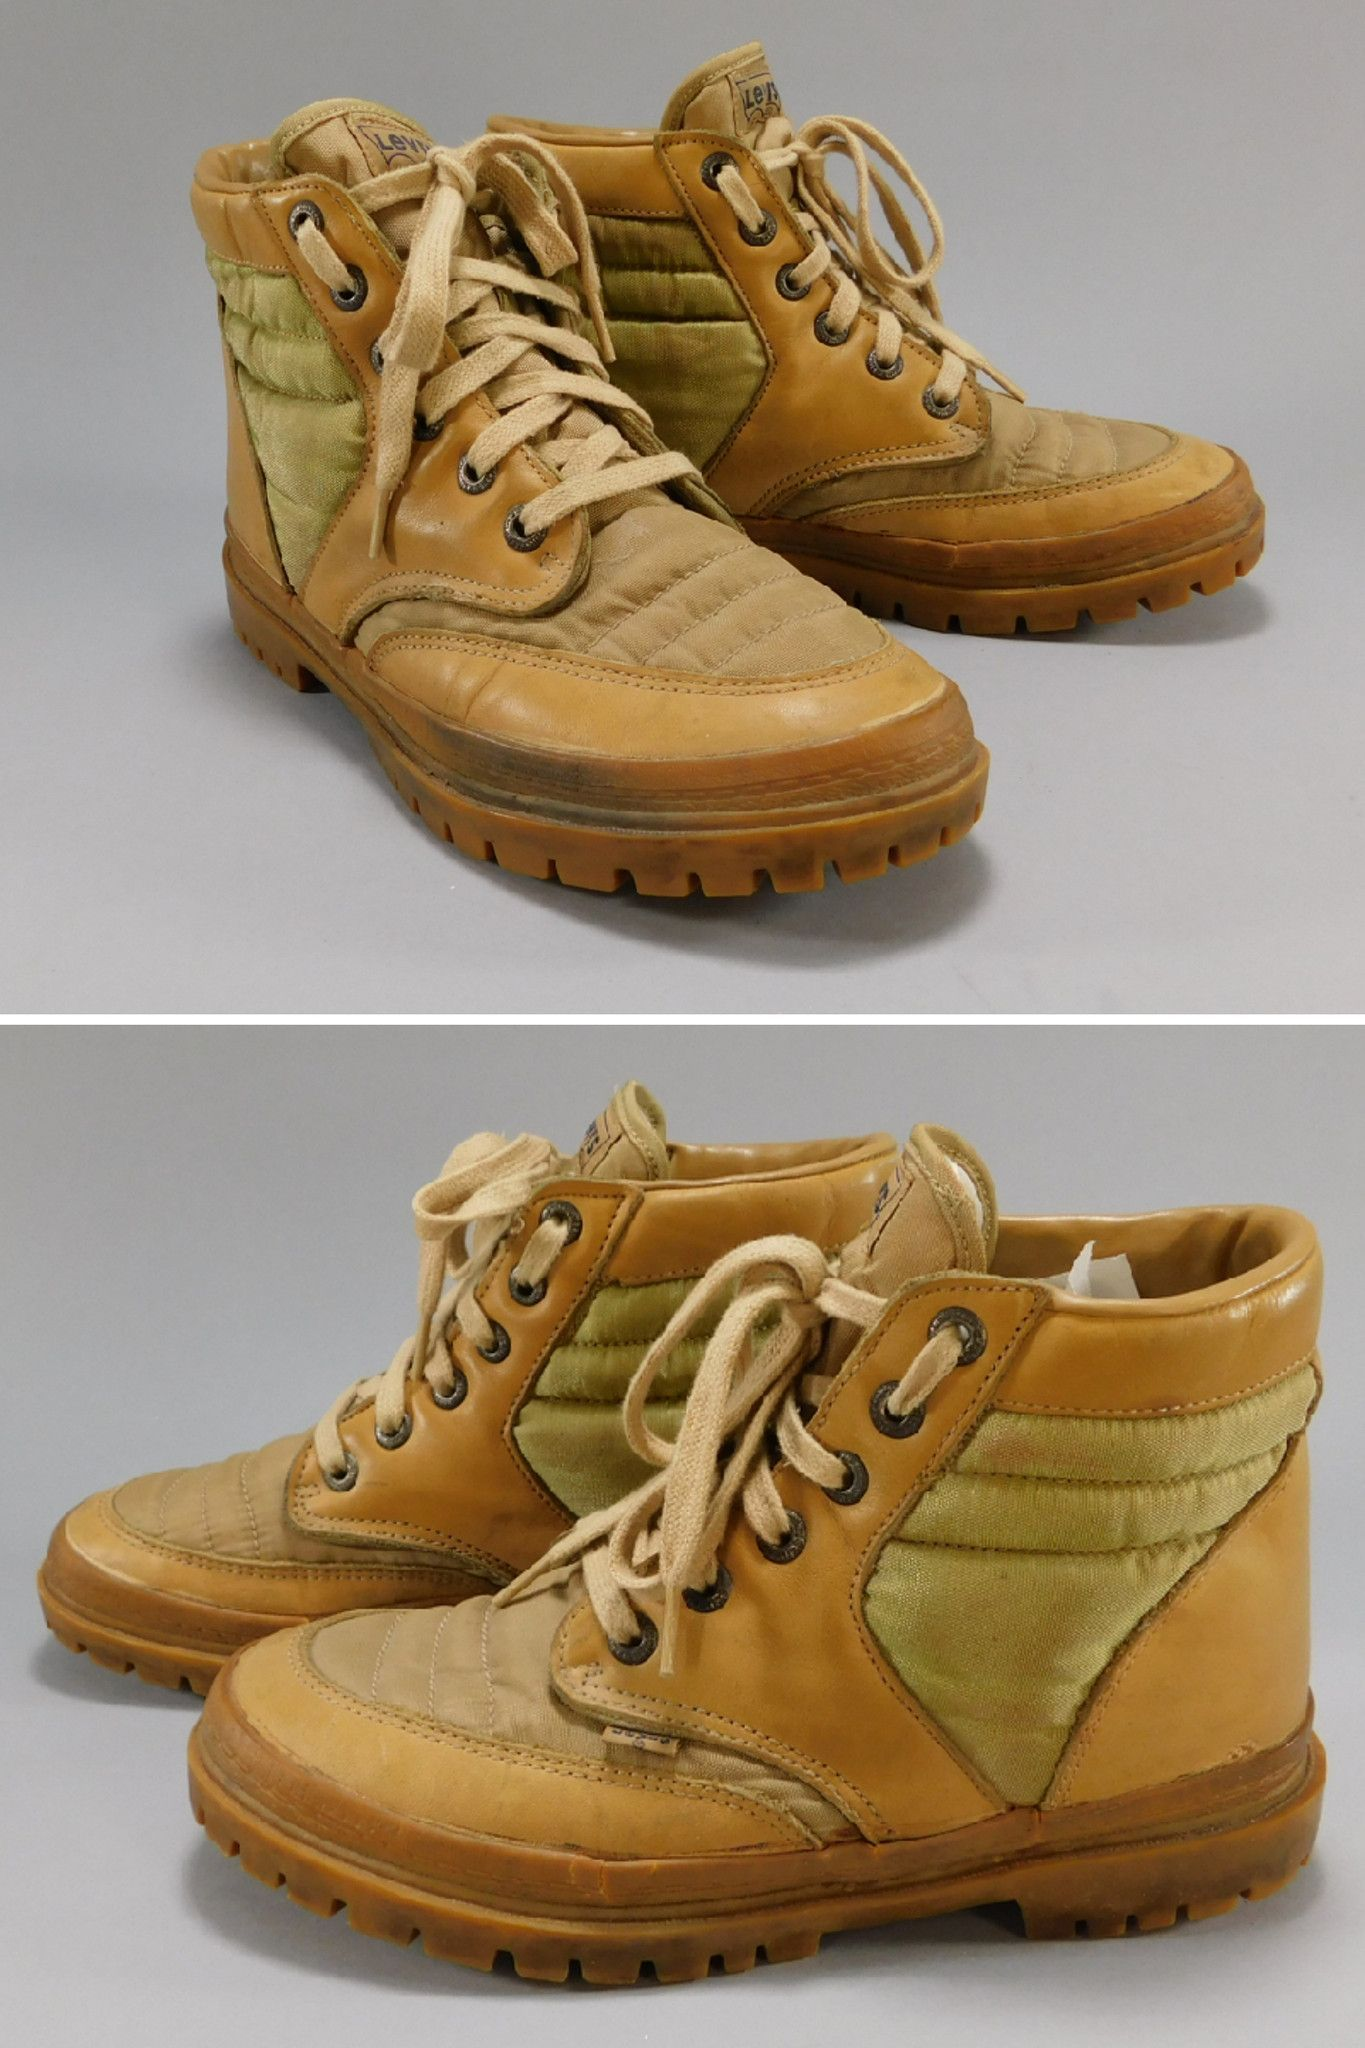 1970s - Early 1980s Vintage Levi s Boots   Shoes Lug Sole Hiking Boots fa5cc5680